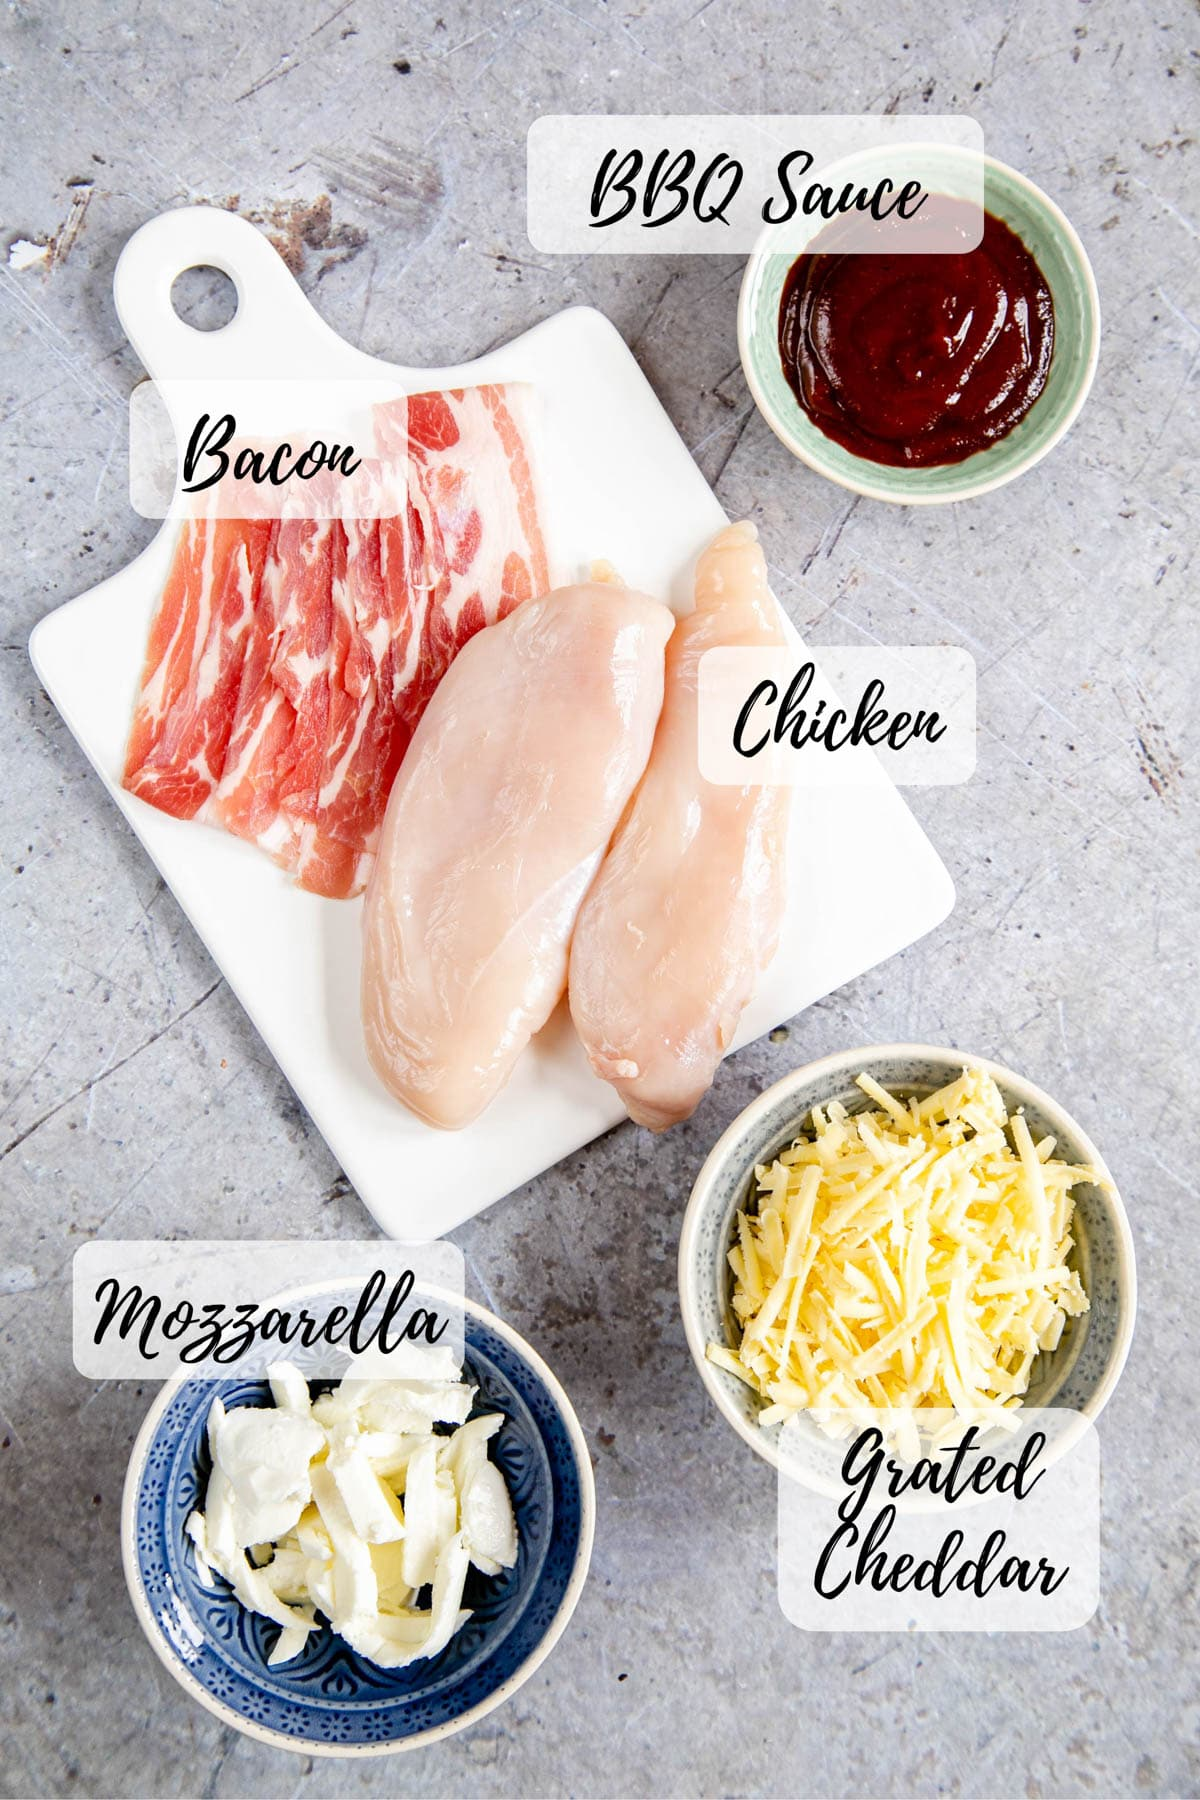 The ingredients for hunters' chicken - chicken breasts, bacon, bbq sauce, mozzarella and cheddar cheese.